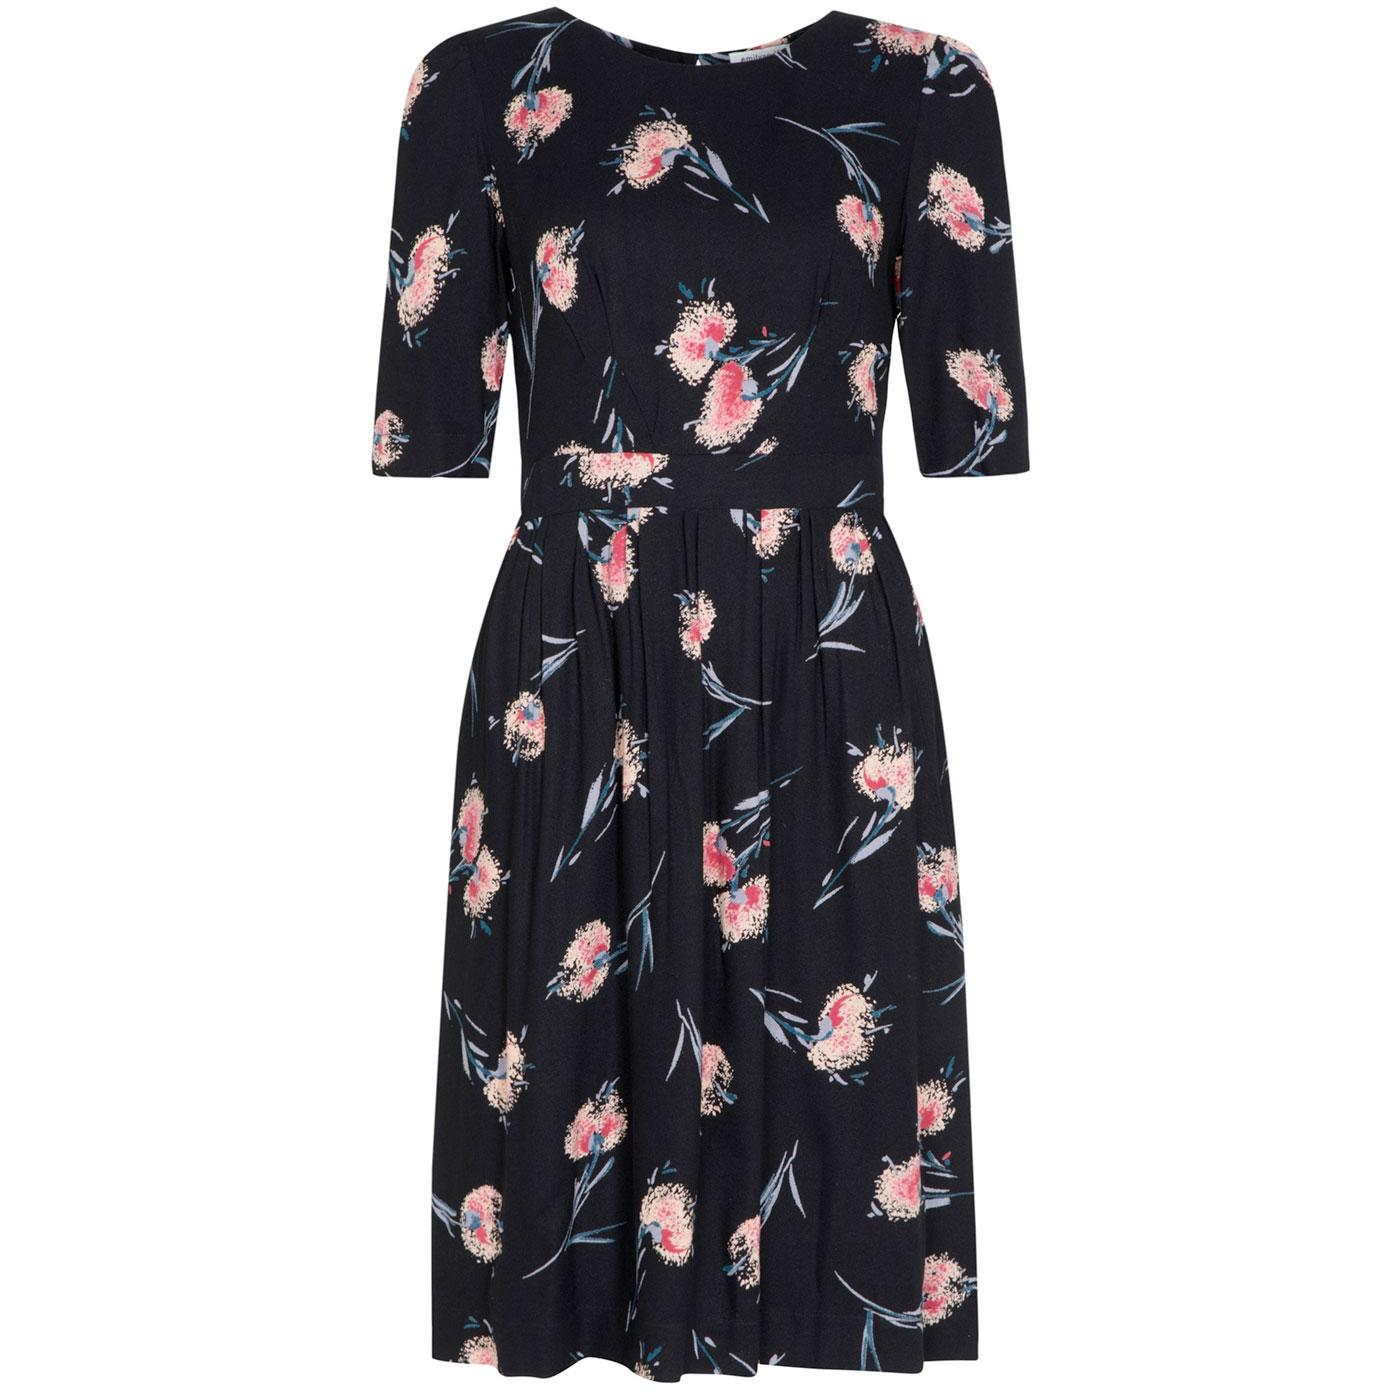 Heather EMILY & FIN Retro Pom Pom Floral Dress